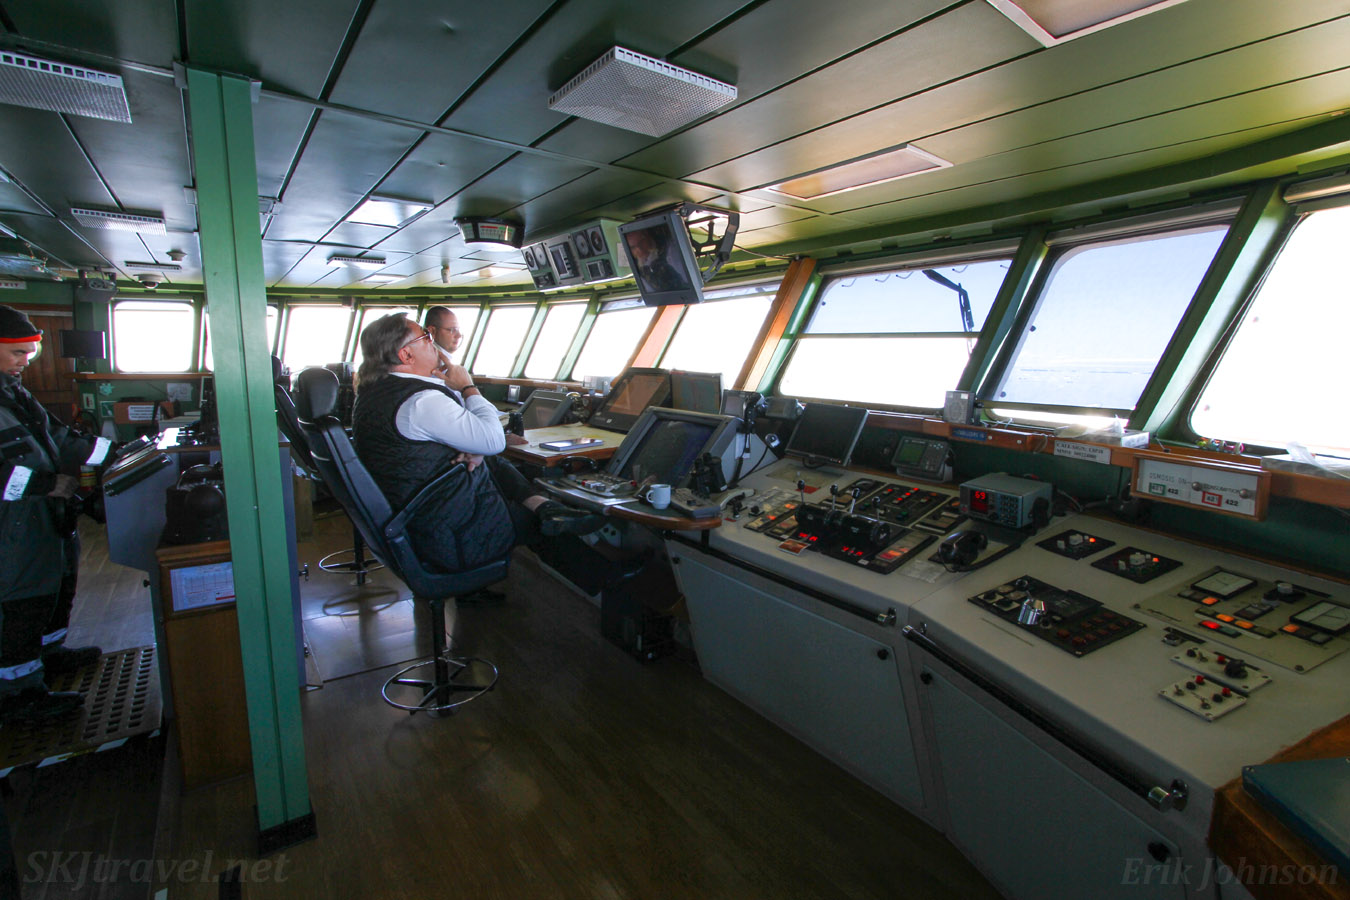 The bridge of the m/v Sea Spirit, sailing in Antarctica.